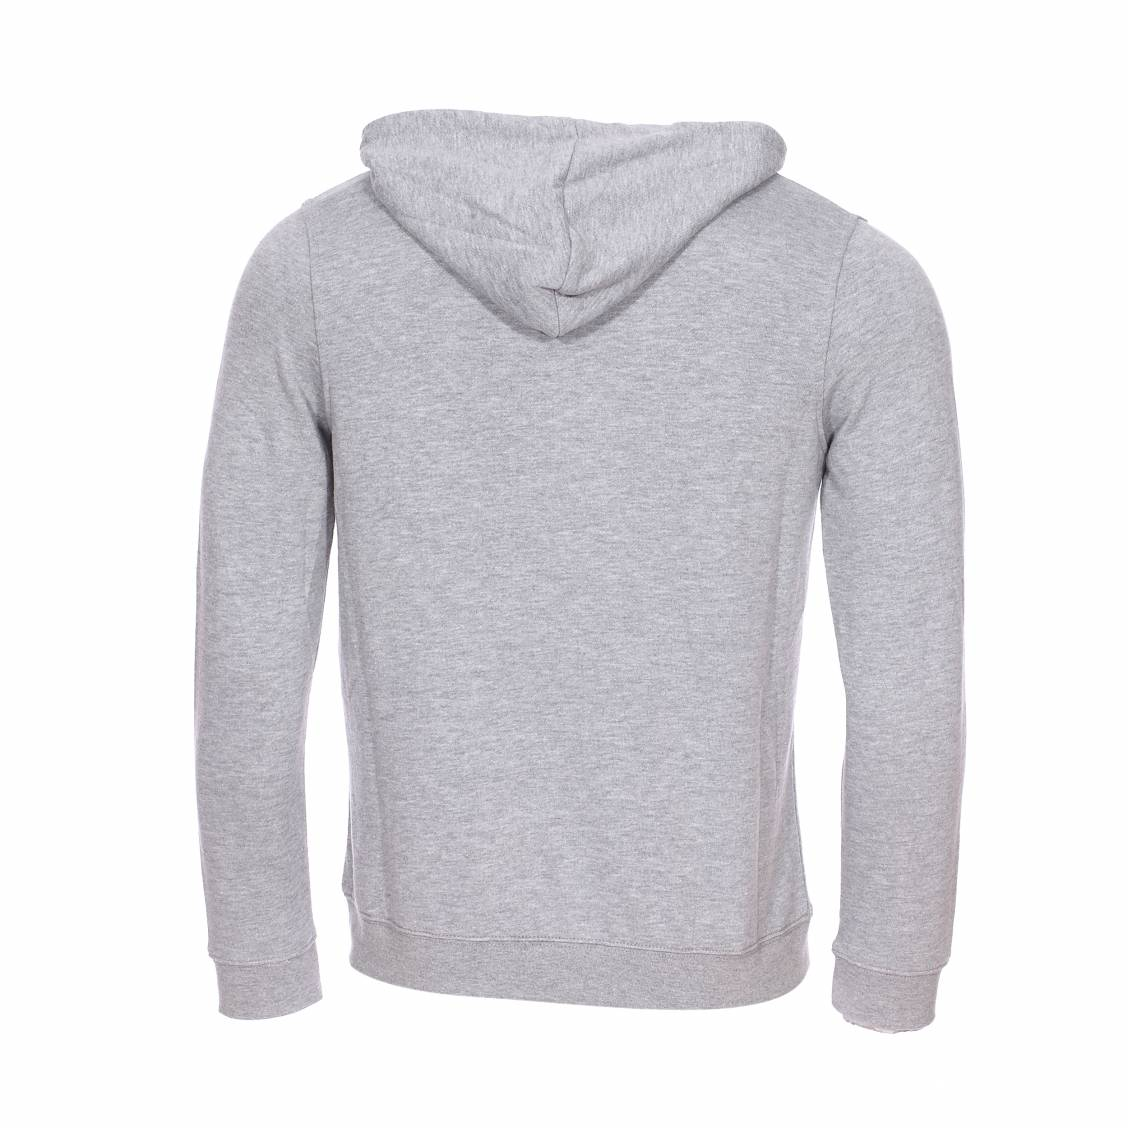 fréquent parcourir les dernières collections divers styles Sweat zippé à capuche Element Junior Vertical gris chiné | Rue Des Hommes